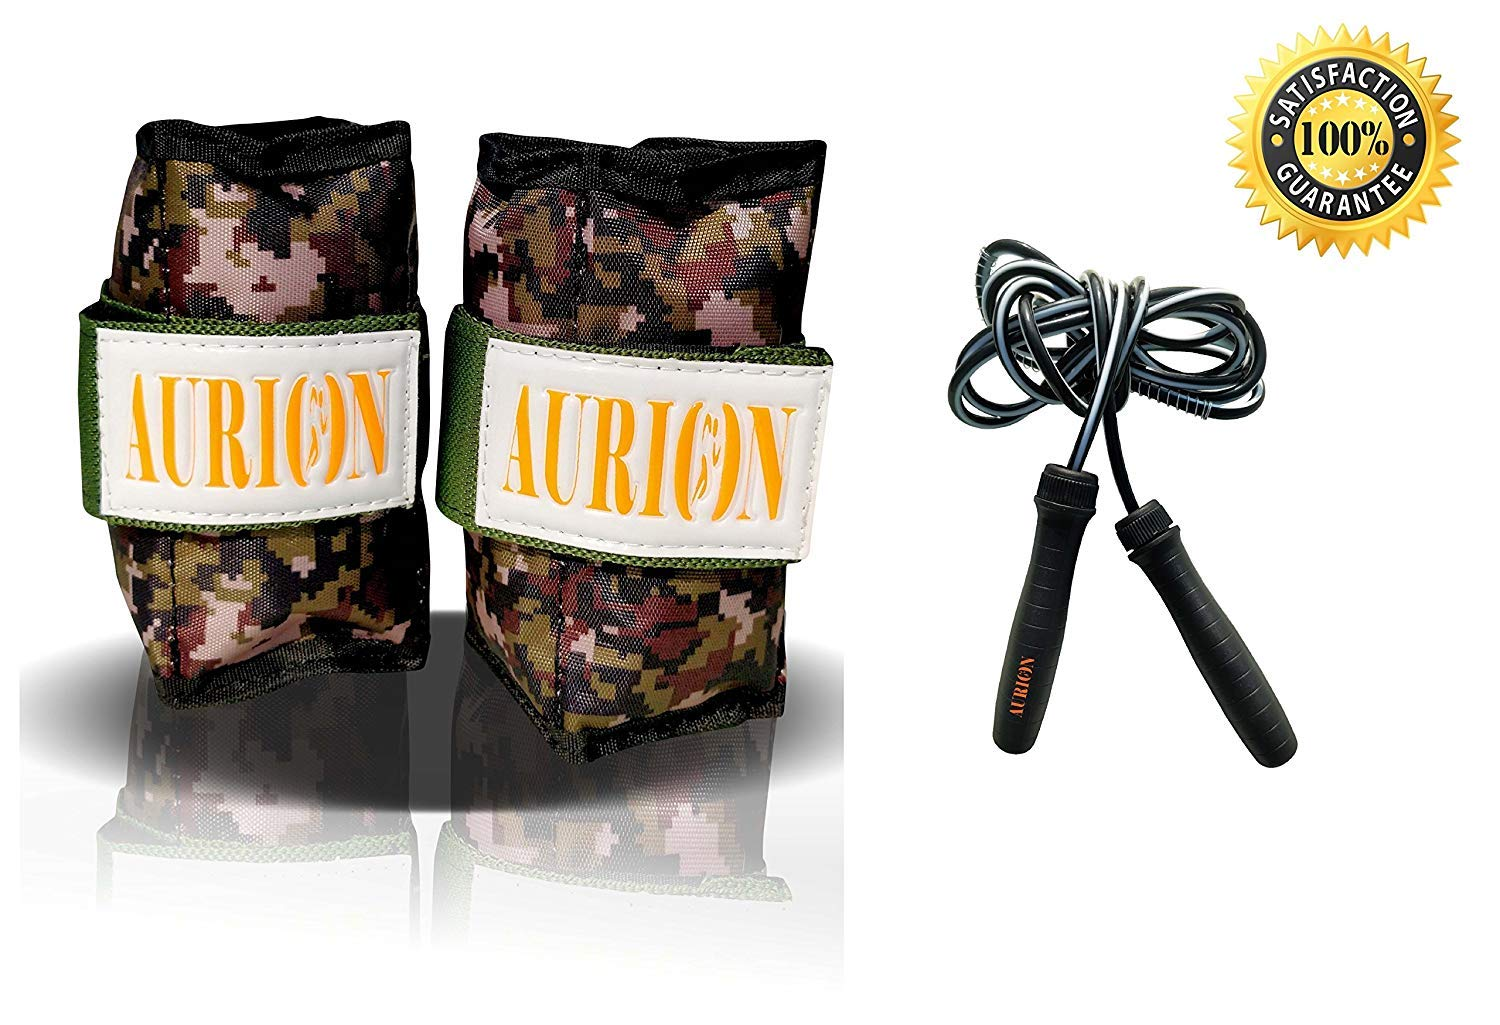 Aurion Wrist Ankle Weights Resistance Strength Training Exercise Bracelets Straps Gym with Skipping Rope